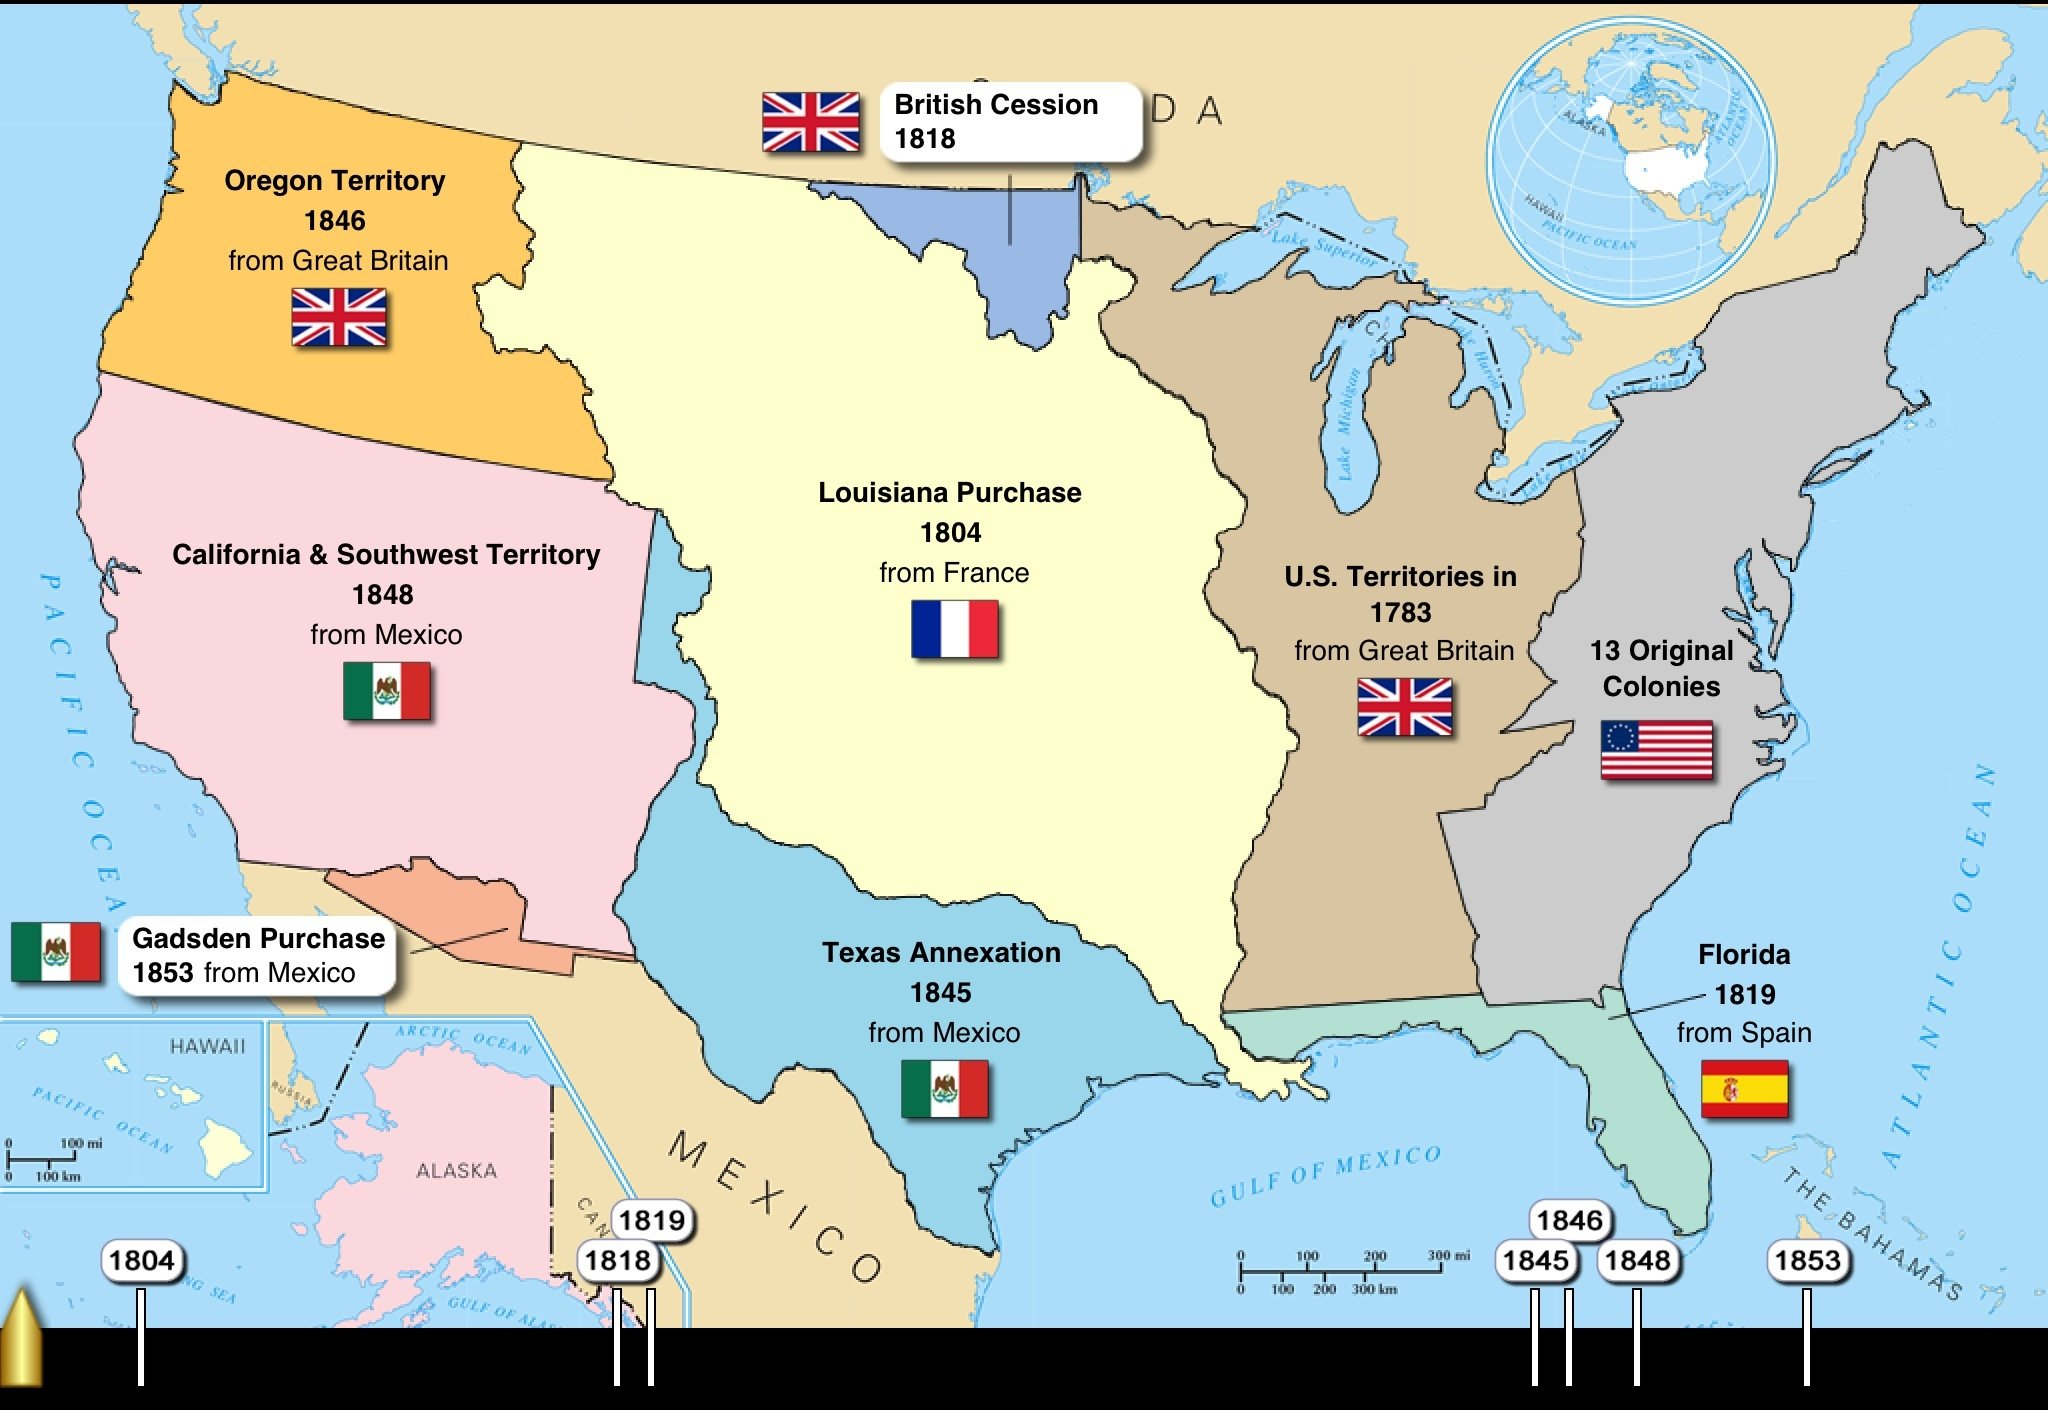 territory eexpansion The issue of territorial expansion sparked considerable debate in the period 1800-1855 analyze this debate and evaluate the influence of both supporters and.